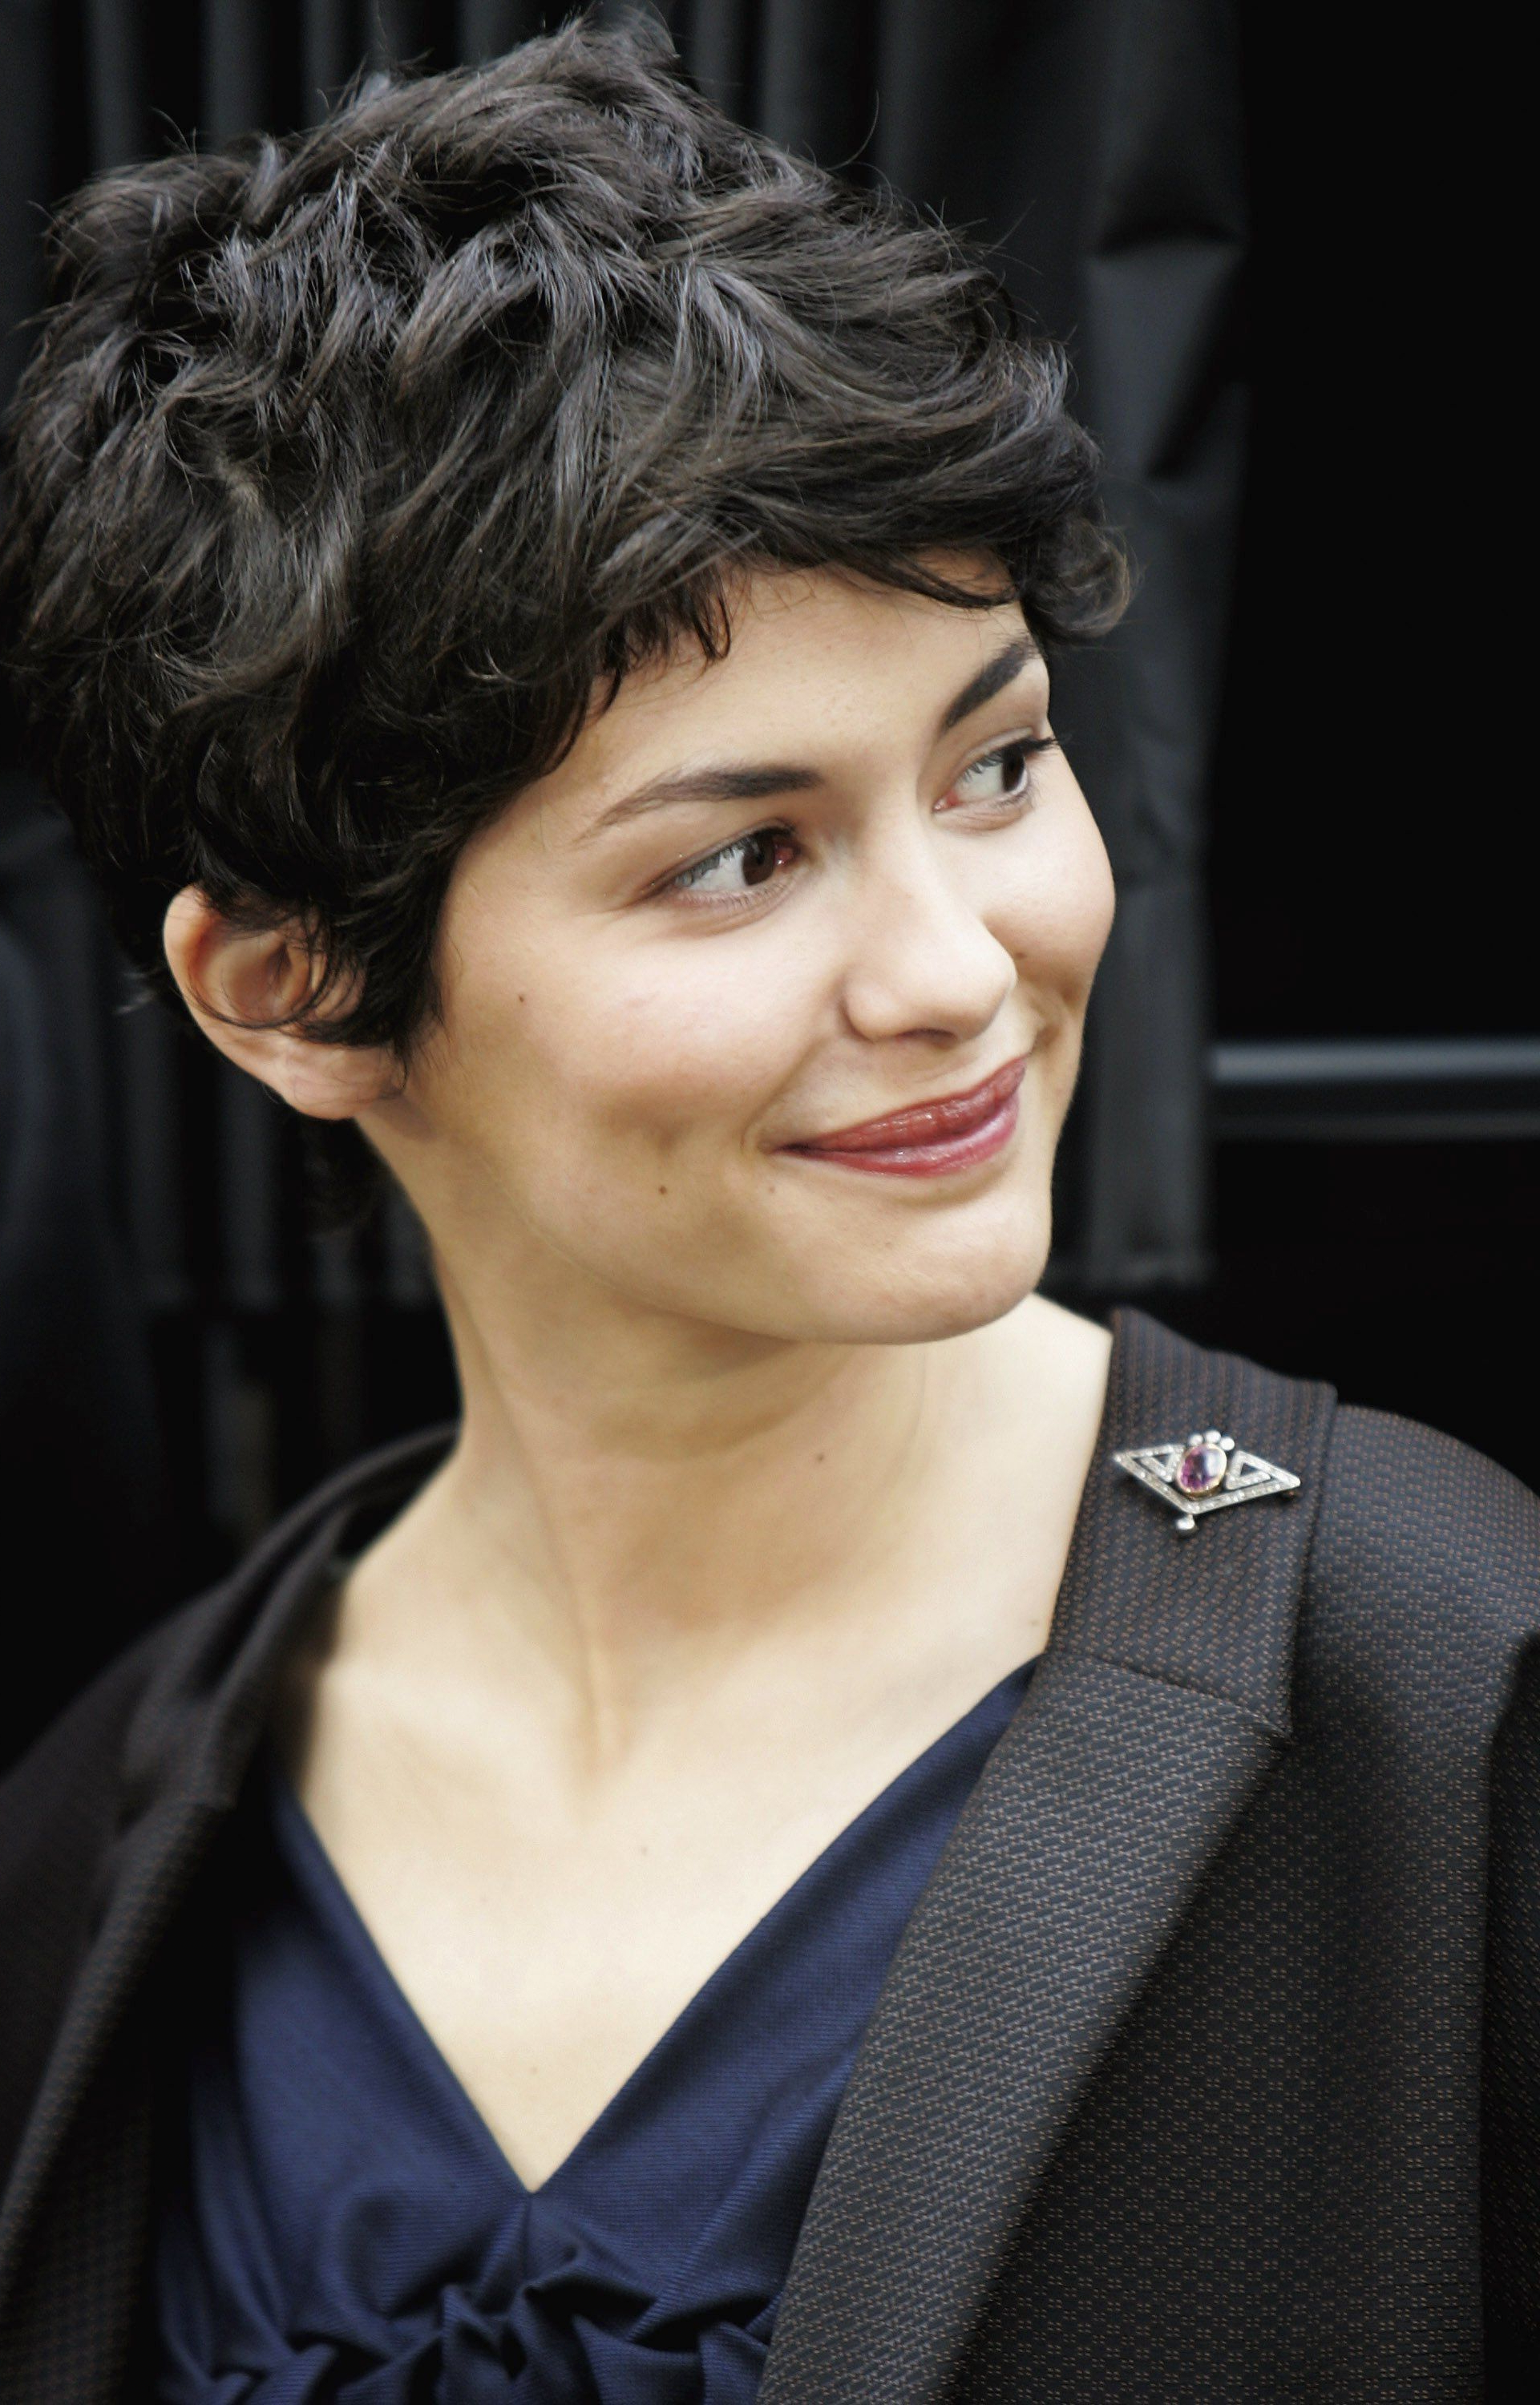 Audrey Tautou | Short Shorter Shortest In 2018 | Pinterest | Hair With Regard To Audrey Tautou Short Haircuts (Gallery 8 of 25)